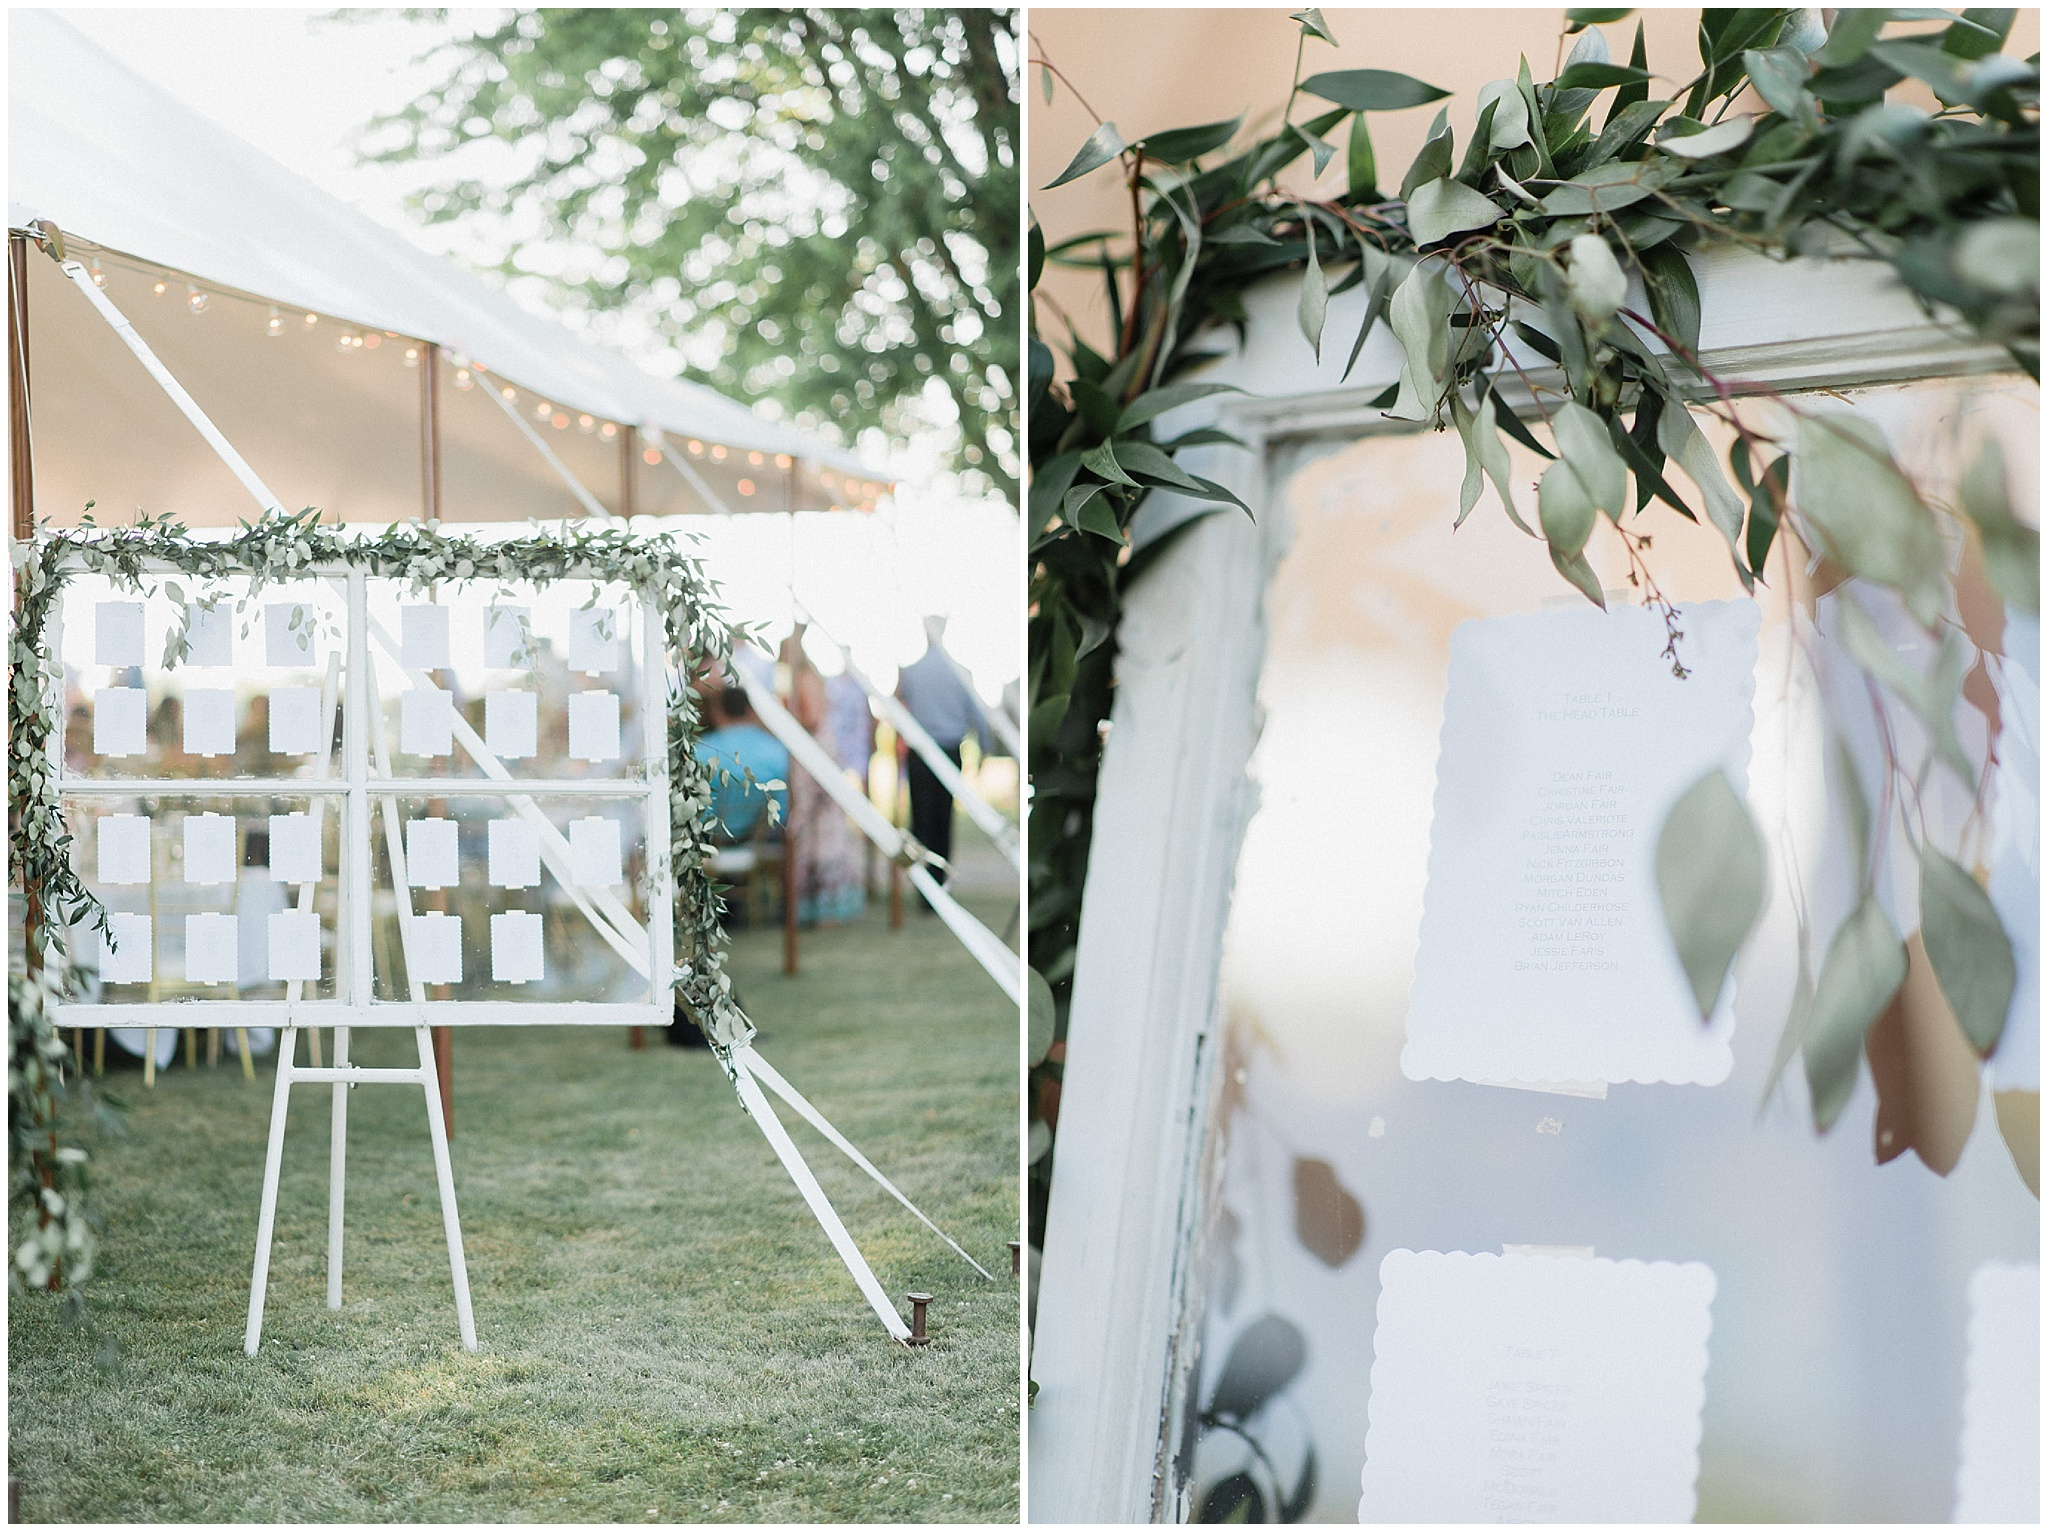 Rustic window pane seating chart with garland | Tent wedding on family farm in Guelph, Ontario by Jenn Kavanagh Photography